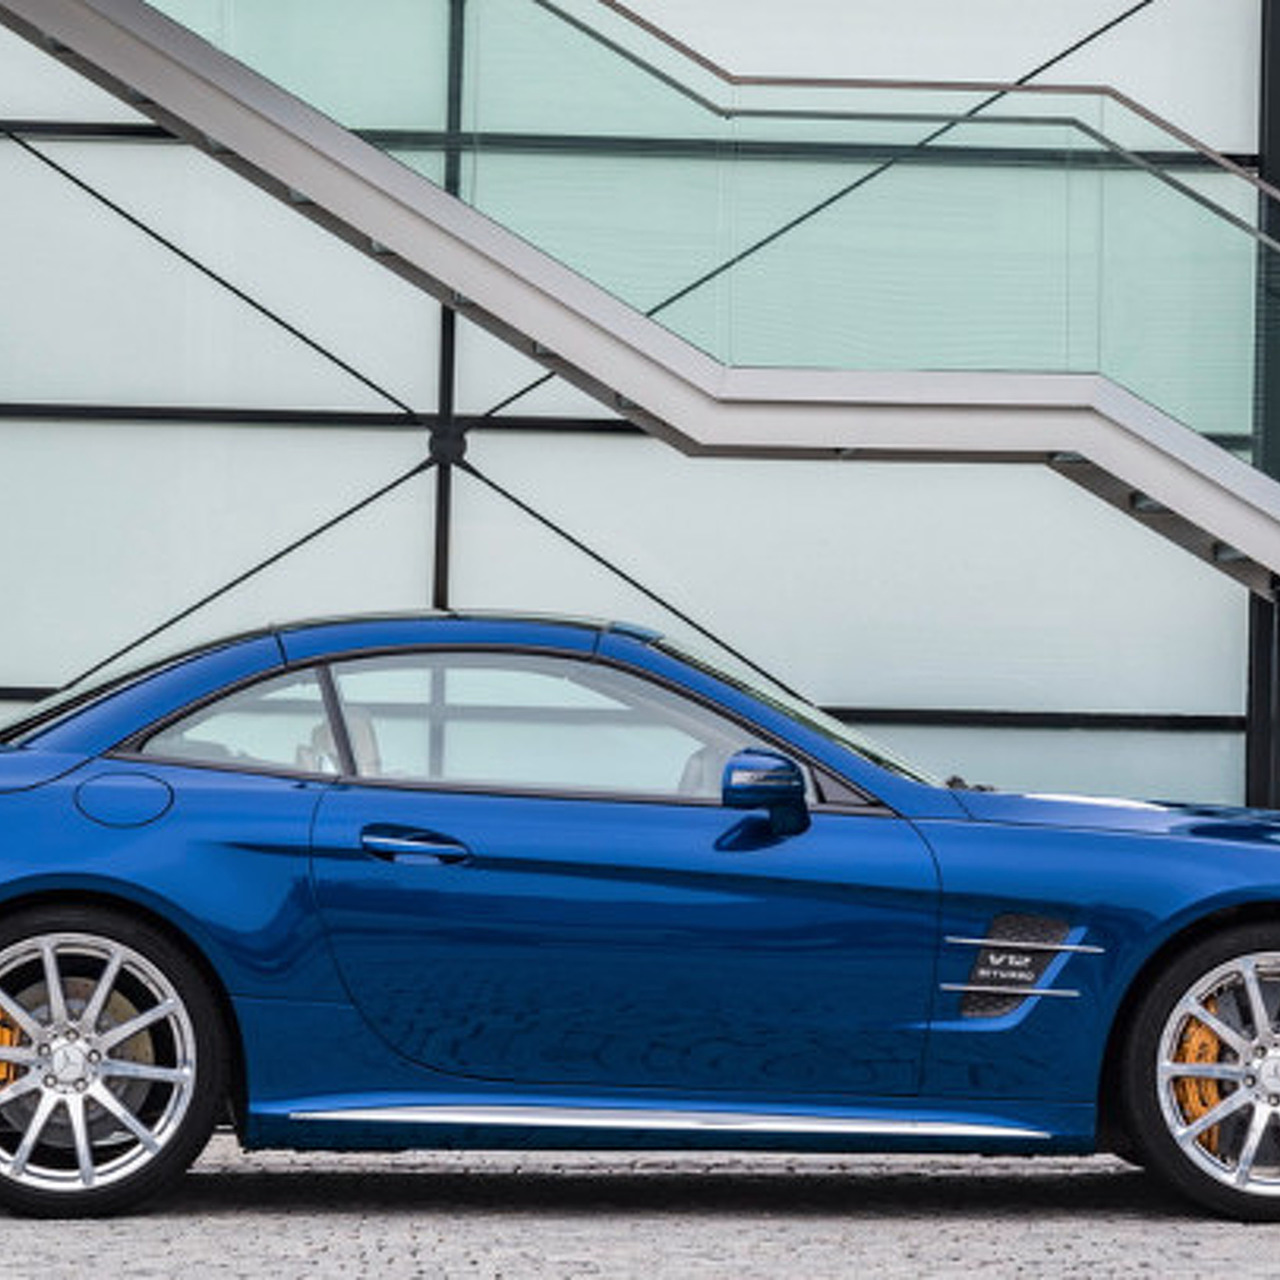 Mercedes-Benz SL-Class Gets a Much-Needed Facelift